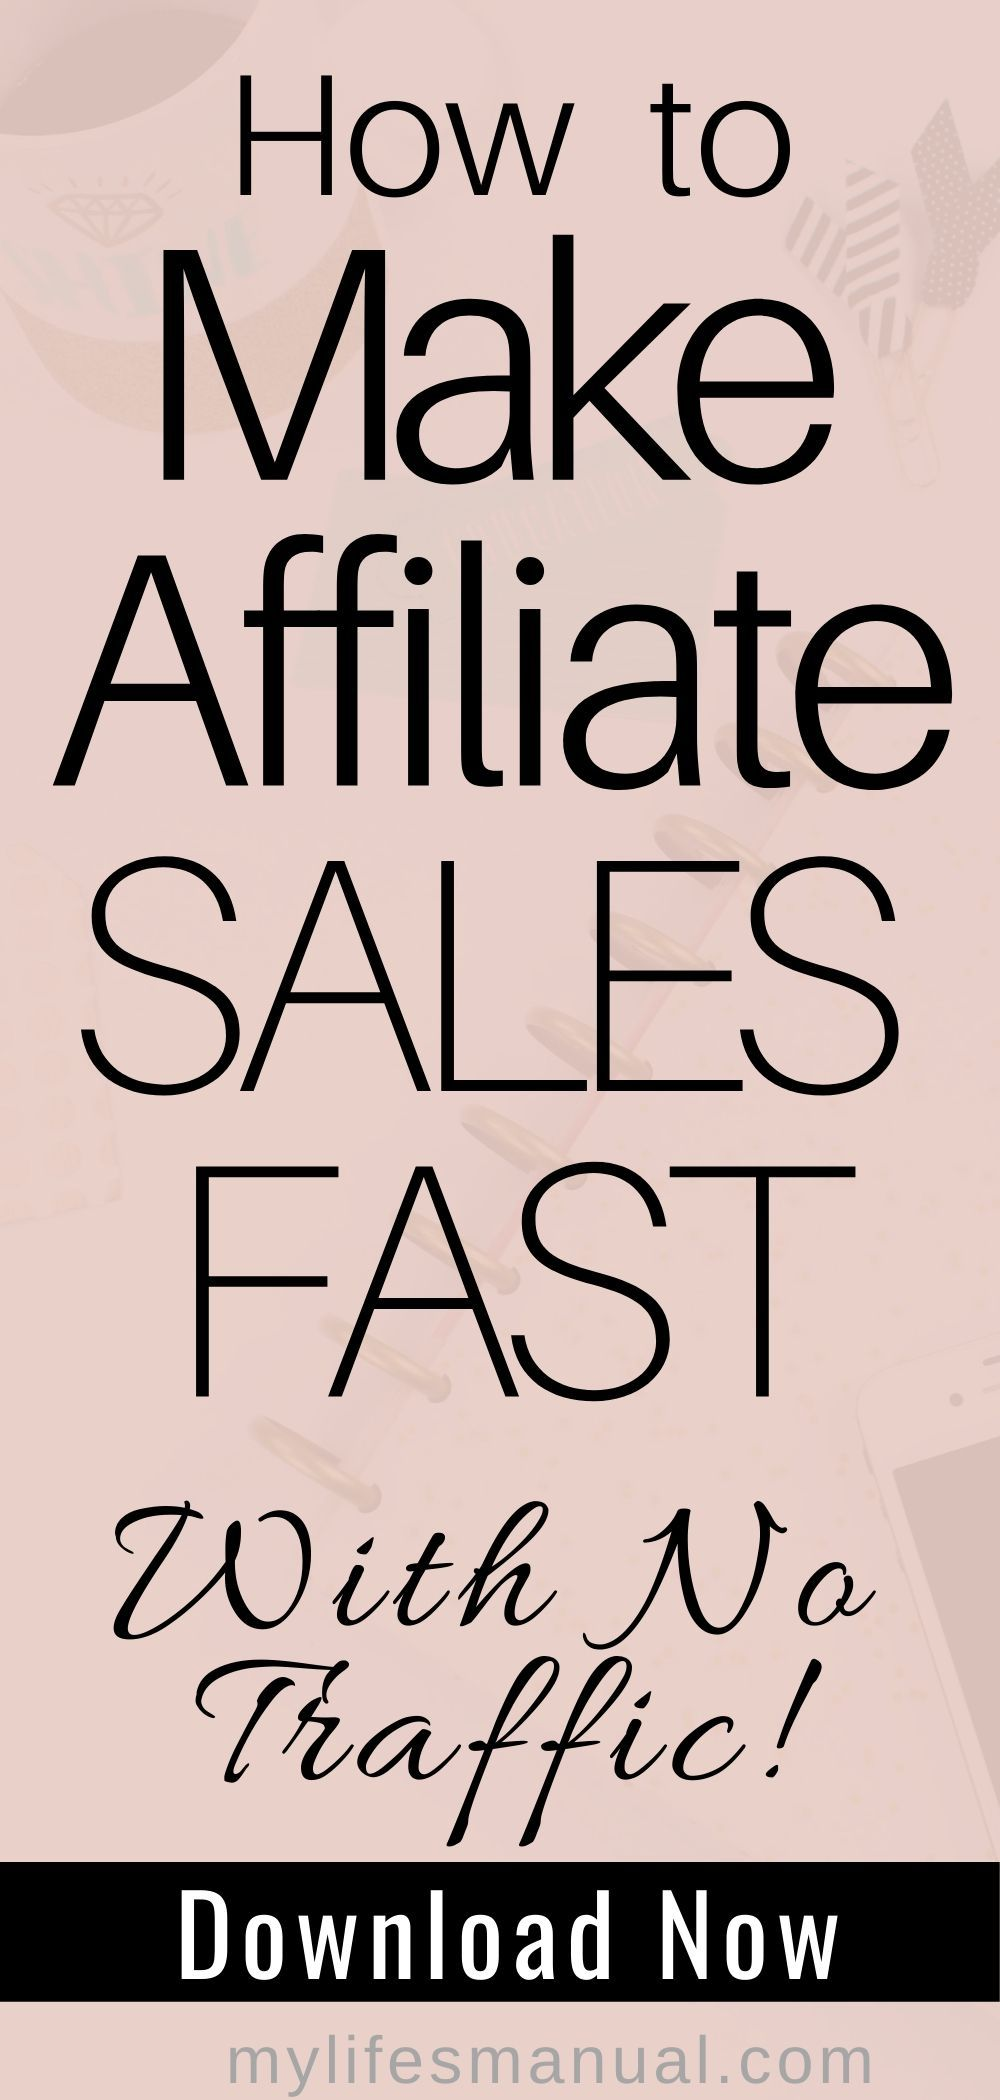 Want to quickly make affiliate sales with a new blog? Wondering how long it takes to make money from affiliate marketing when you don't have enough blog traffic? Learn how to earn and increase your affiliate income even without a ton of blog traffic using the affiliate marketing strategies in this post. #affiliatemarketing #bloggingtips #blogtips #affiliatesales #makemoneyonline #makemoneyblogging